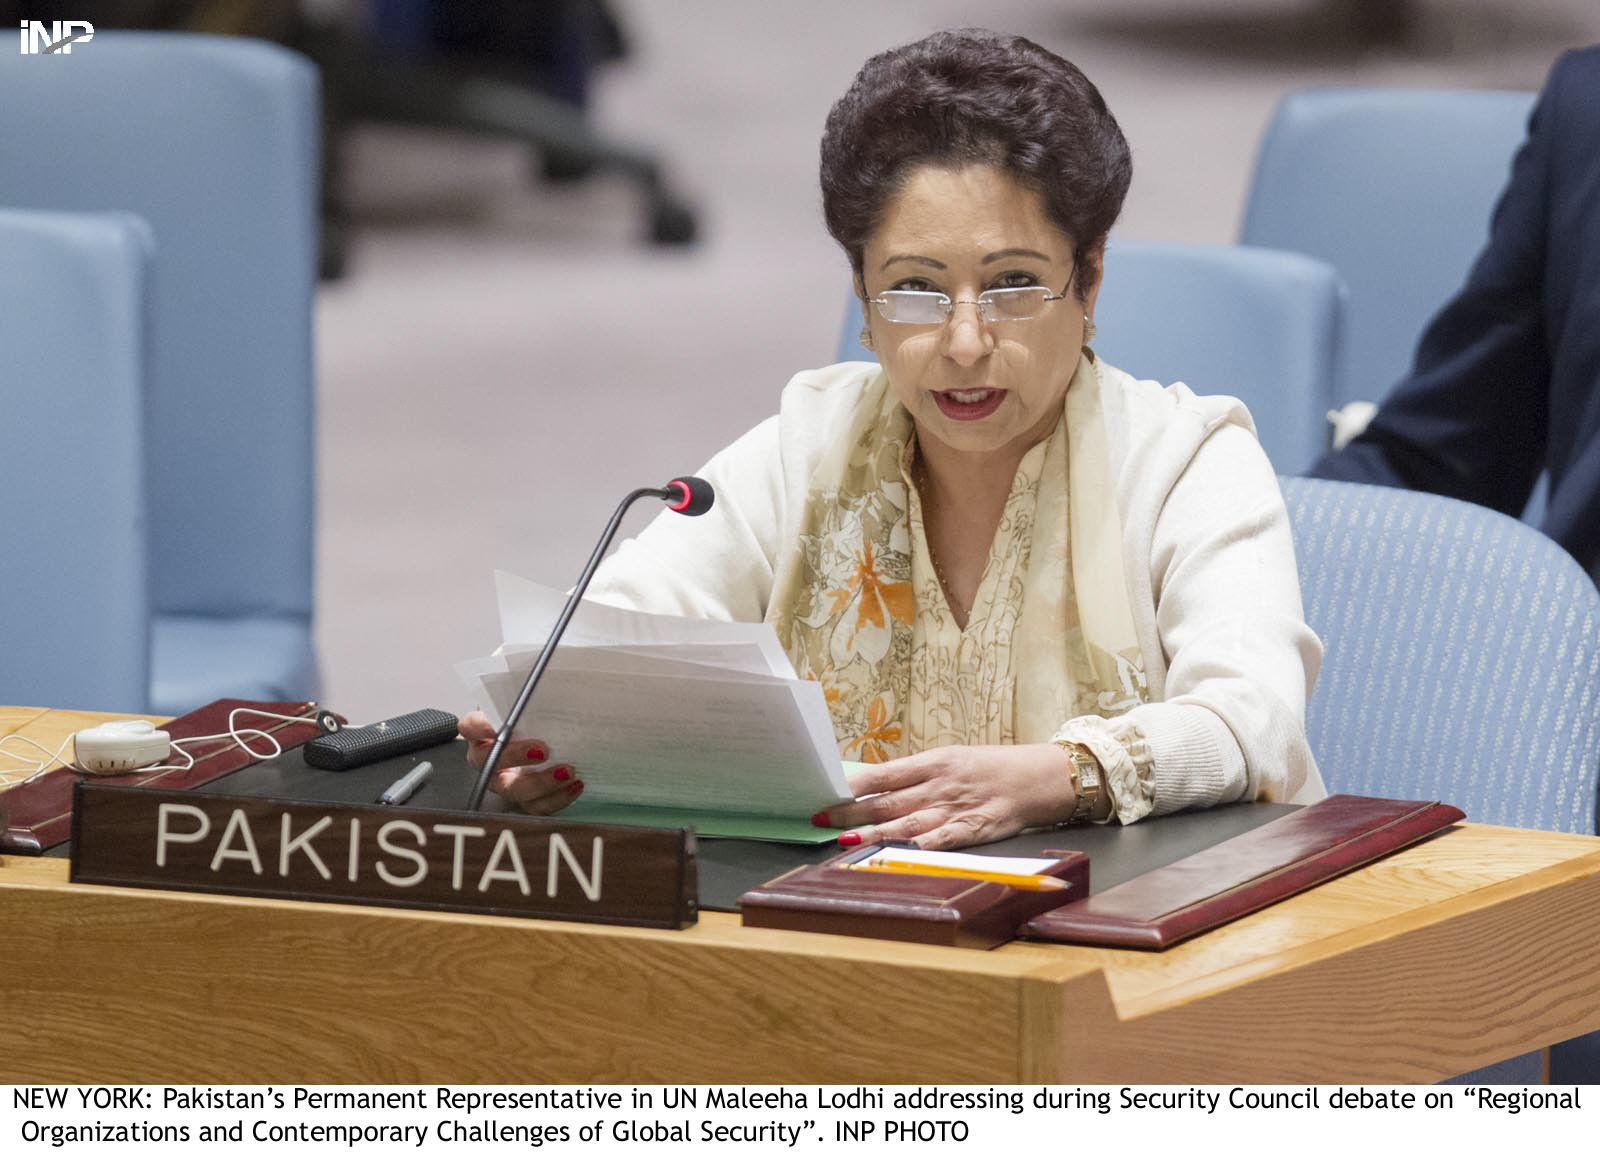 maleeha lodhi says demand defies 21st century principle of achieving representation through periodic elections photo inp